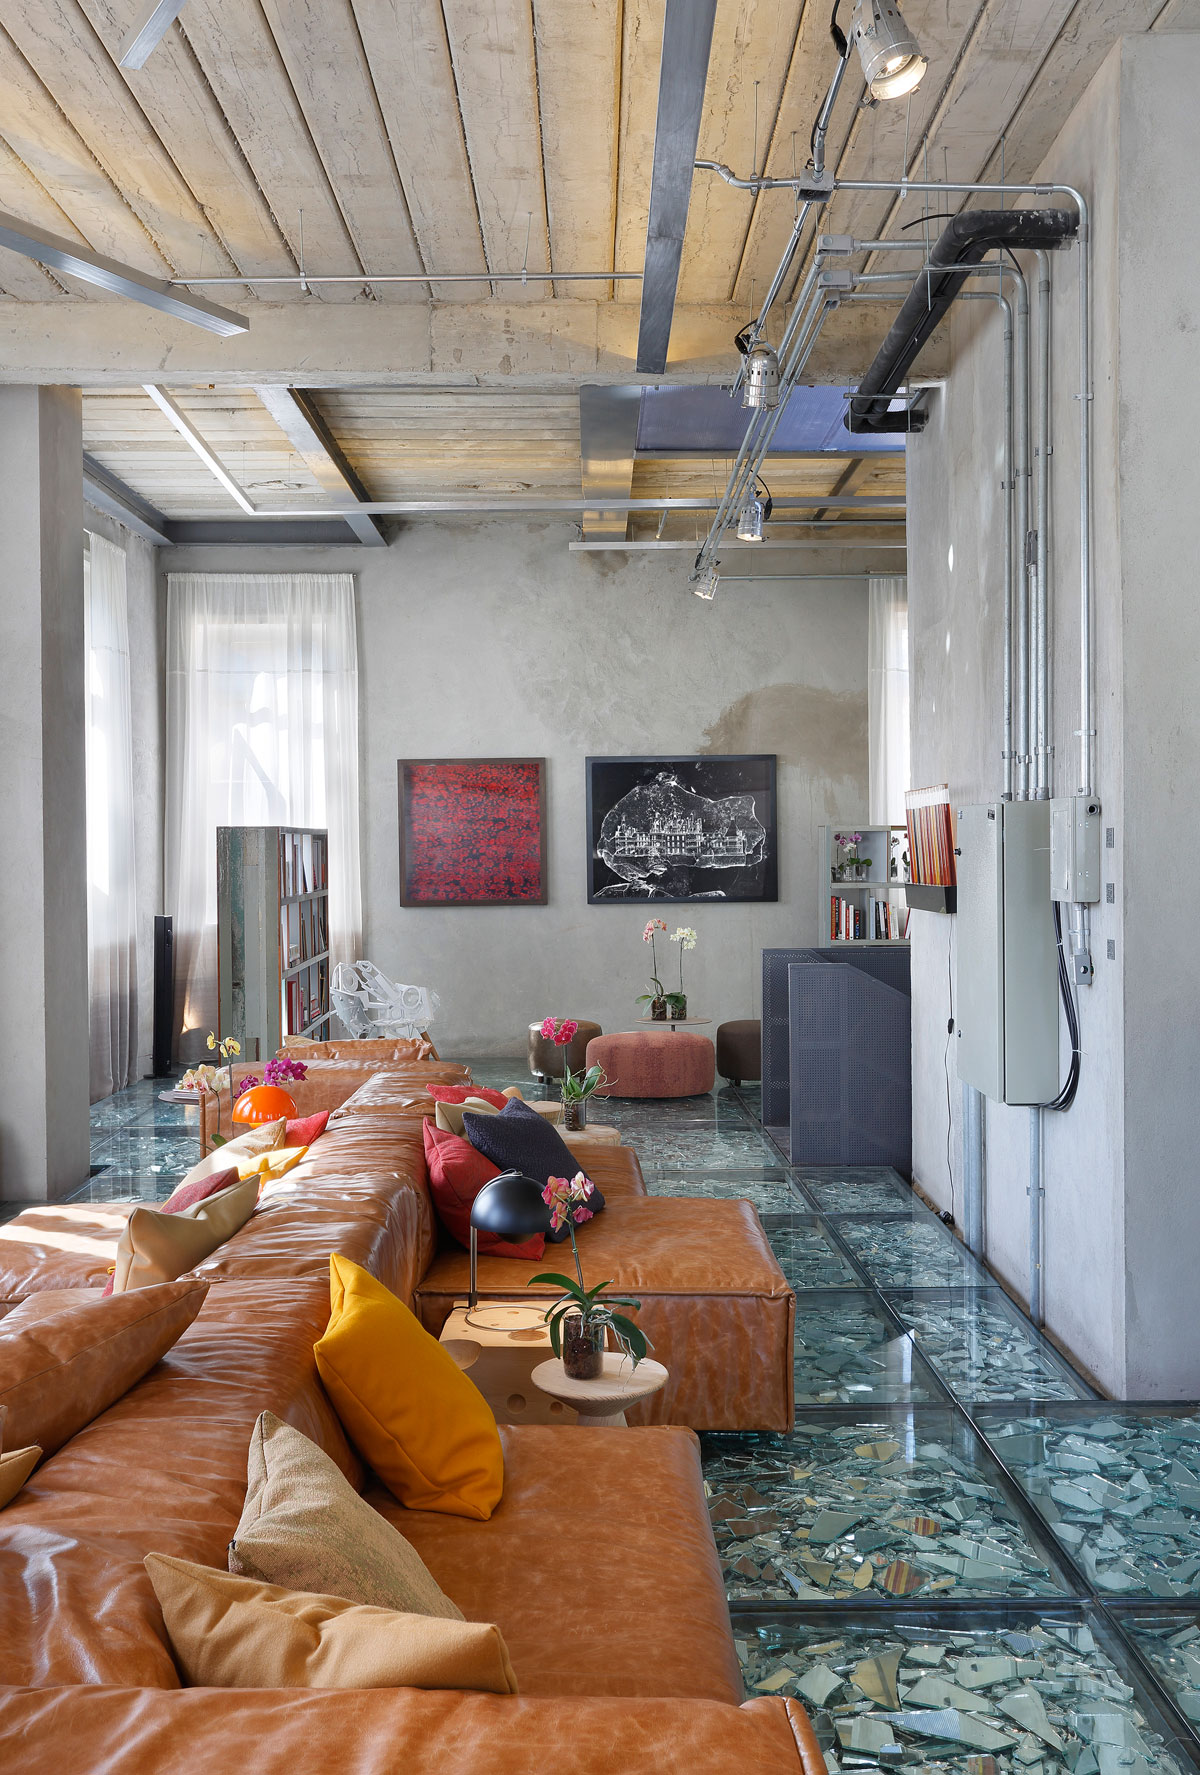 Stylish and Eclectic Design with Broken Glass Floor of Lab LZ for Casa Cor Rio 2015 by Giselle Taranto Architecture-11